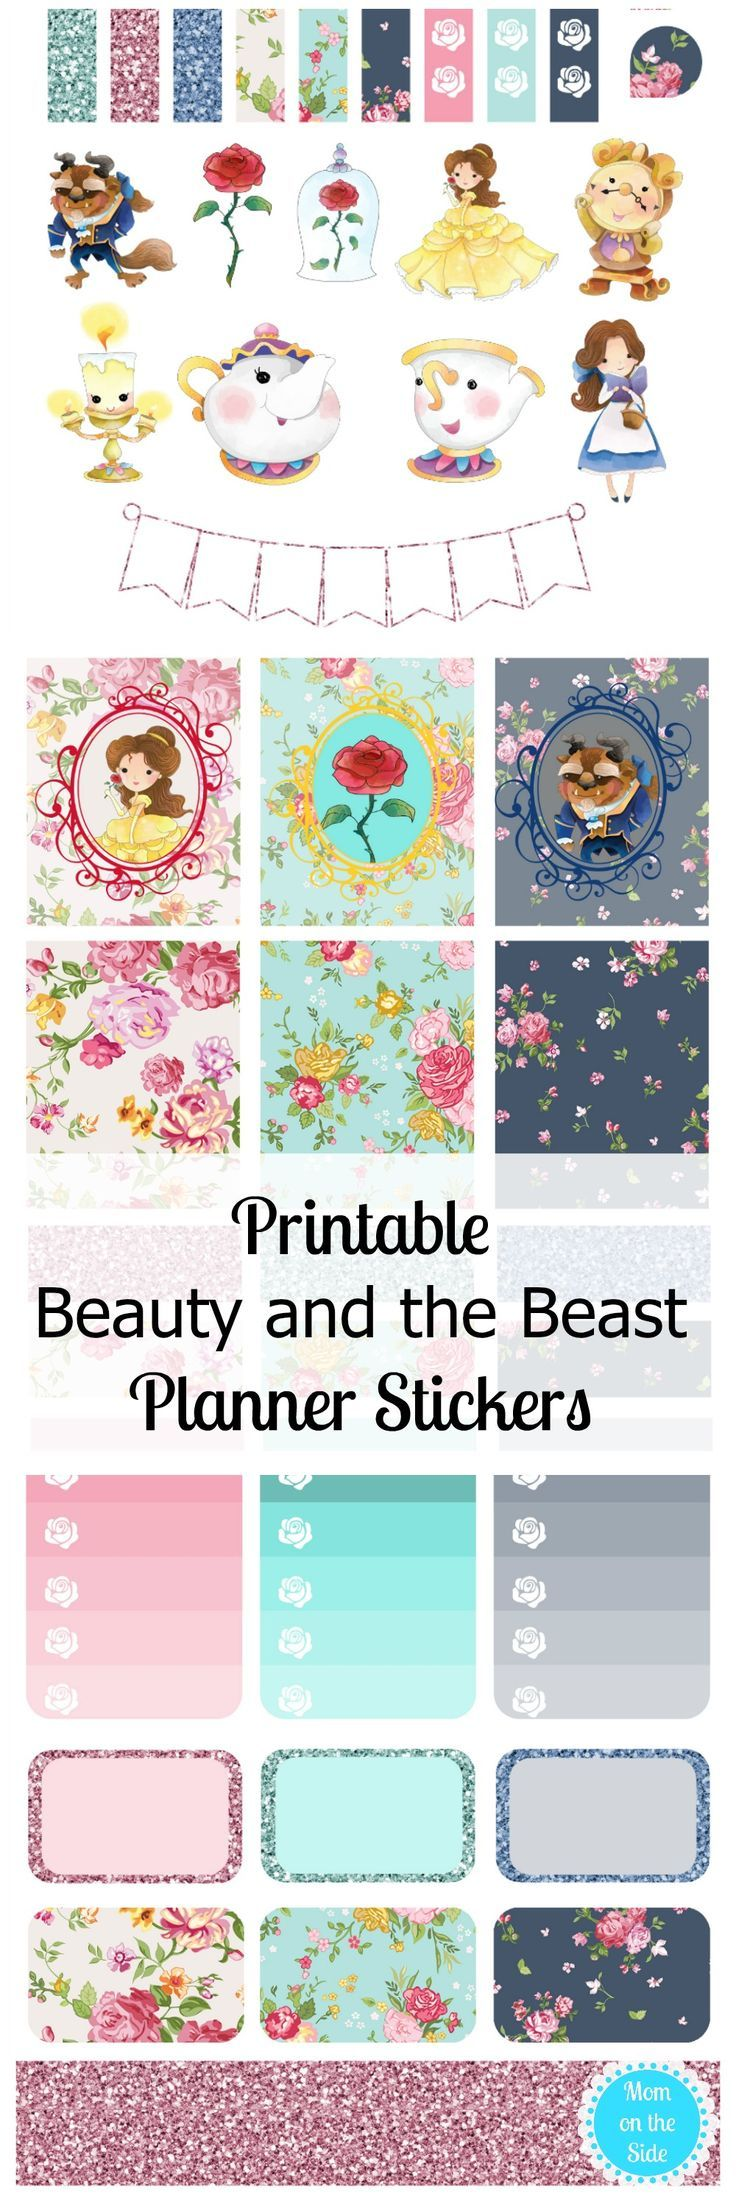 With Disney's Beauty and the Beast now in theaters, these printable Beauty and the Beast Planner Stickers are just the thing your planner needs!  #Autos #Beauty #Books #Funny #Finance #Food #Games #Health #News #Pets #Sport #Soccer #Travel #FunnyGifs #Entertainment #Fashion #Quotes #Animals #Insurance #CarInsurance #Autoinsurancecompaniesquotes #Insurancequotesautoonline #Onlinequotesforautoinsurance #Bestautoinsurancequotes #Automotiveinsurancequote #Affordableautoinsurancequotes…